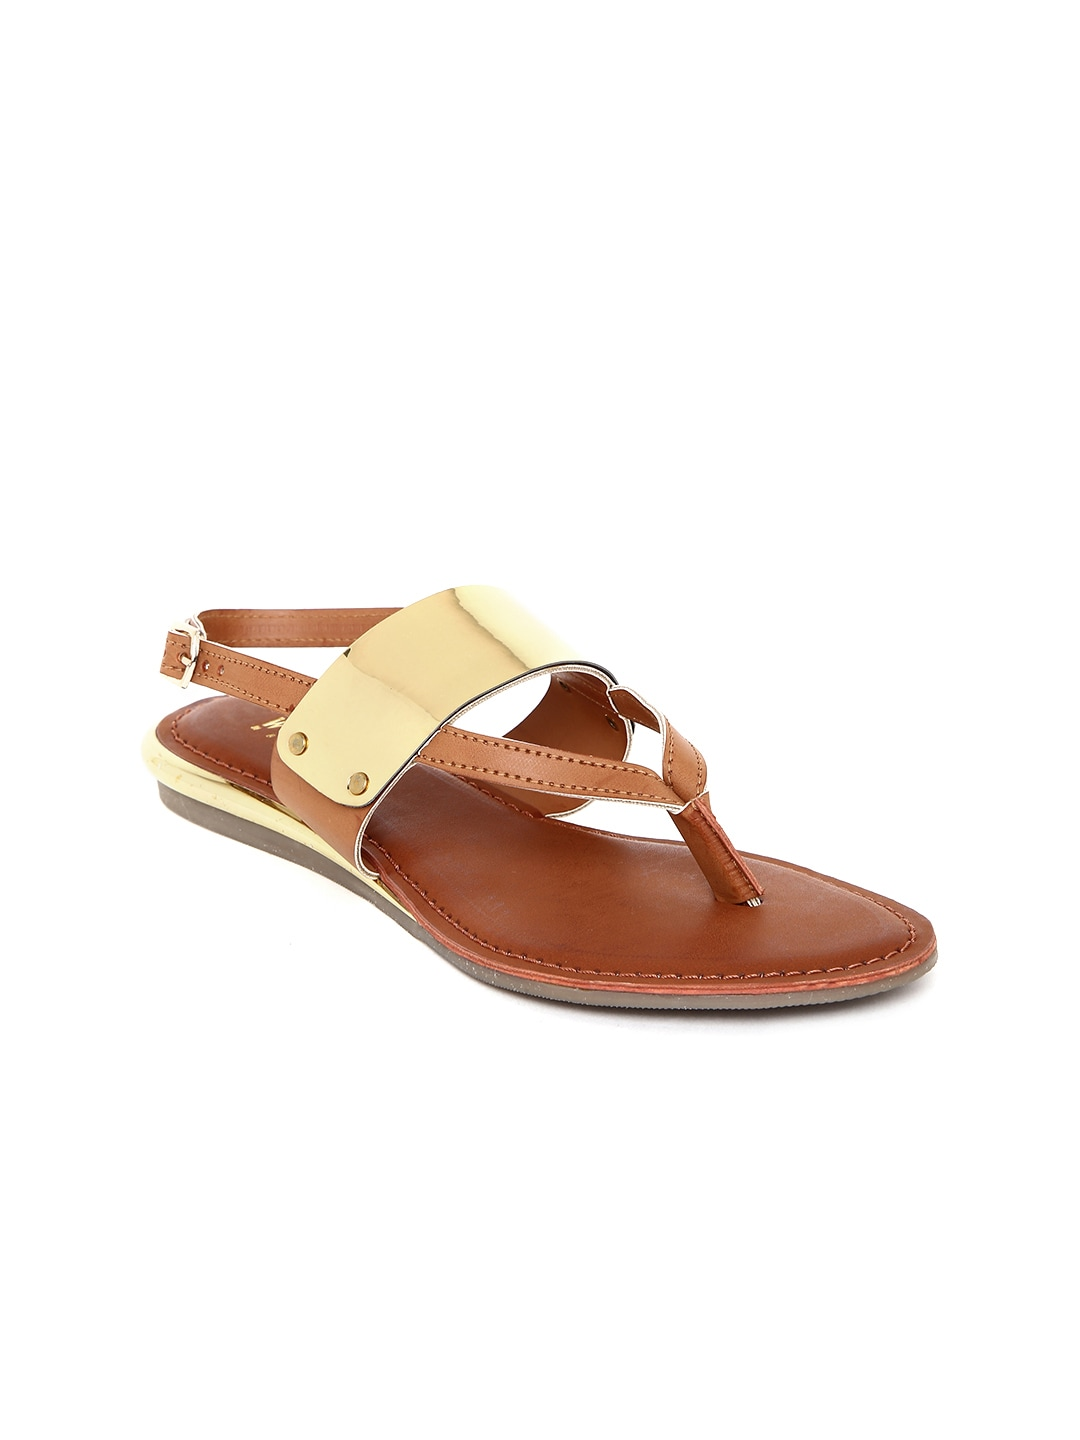 Wet Blue Women Tan Brown & Gold-Toned Sandals